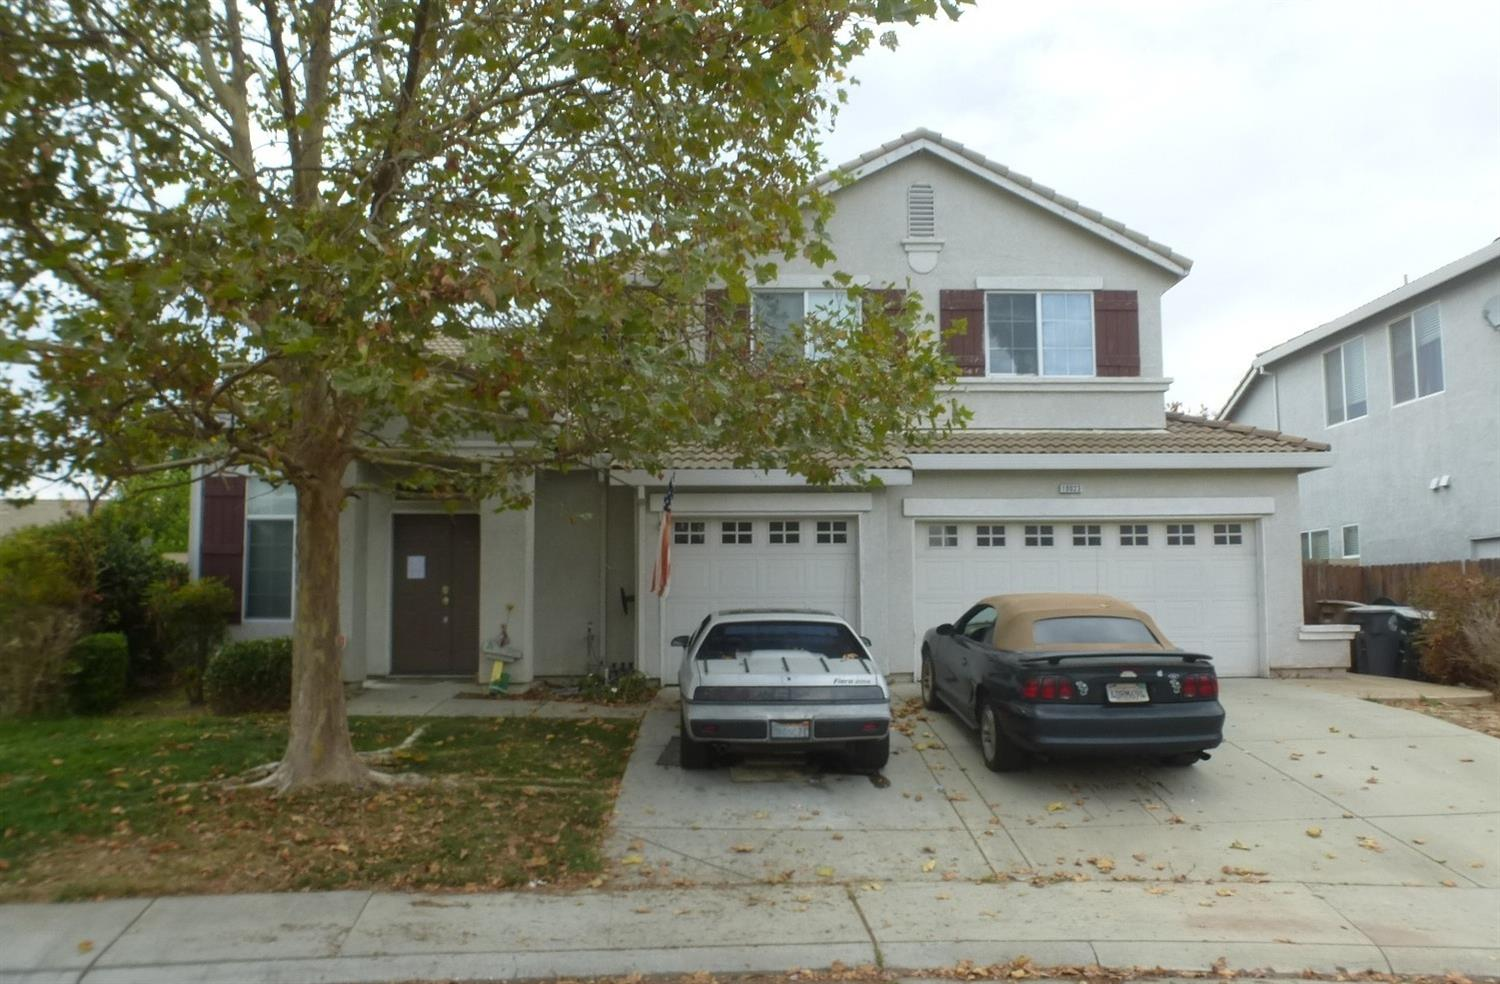 A great opportunity to own in the Laguna Creek S Village. Spacious 4 bedroom, 2.5 baths with master bedroom/bath on ground level!  A great floor plan with Separate formal living/dining room, kithchen with island that opens up to family room with fireplace.   Generous sized backyard with full grown citrus tree storage shed.  Upstairs has remaining bedrooms with bonus room/loft with built ins. Help bring this home back to its formal glory!